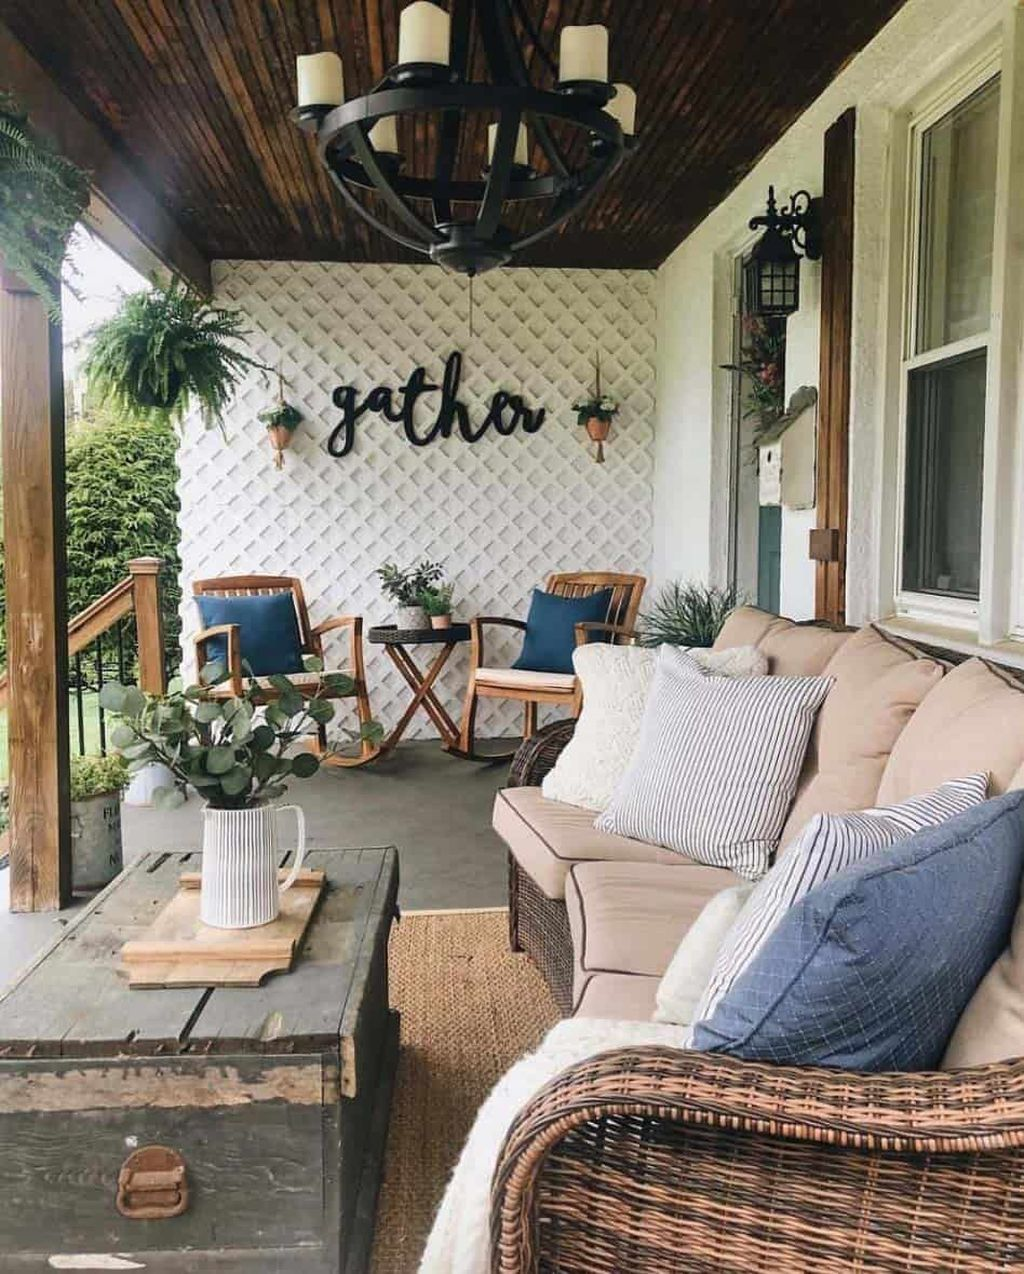 Admirable Cozy Patio Design Ideas To Relaxing On A Sunny Day 17